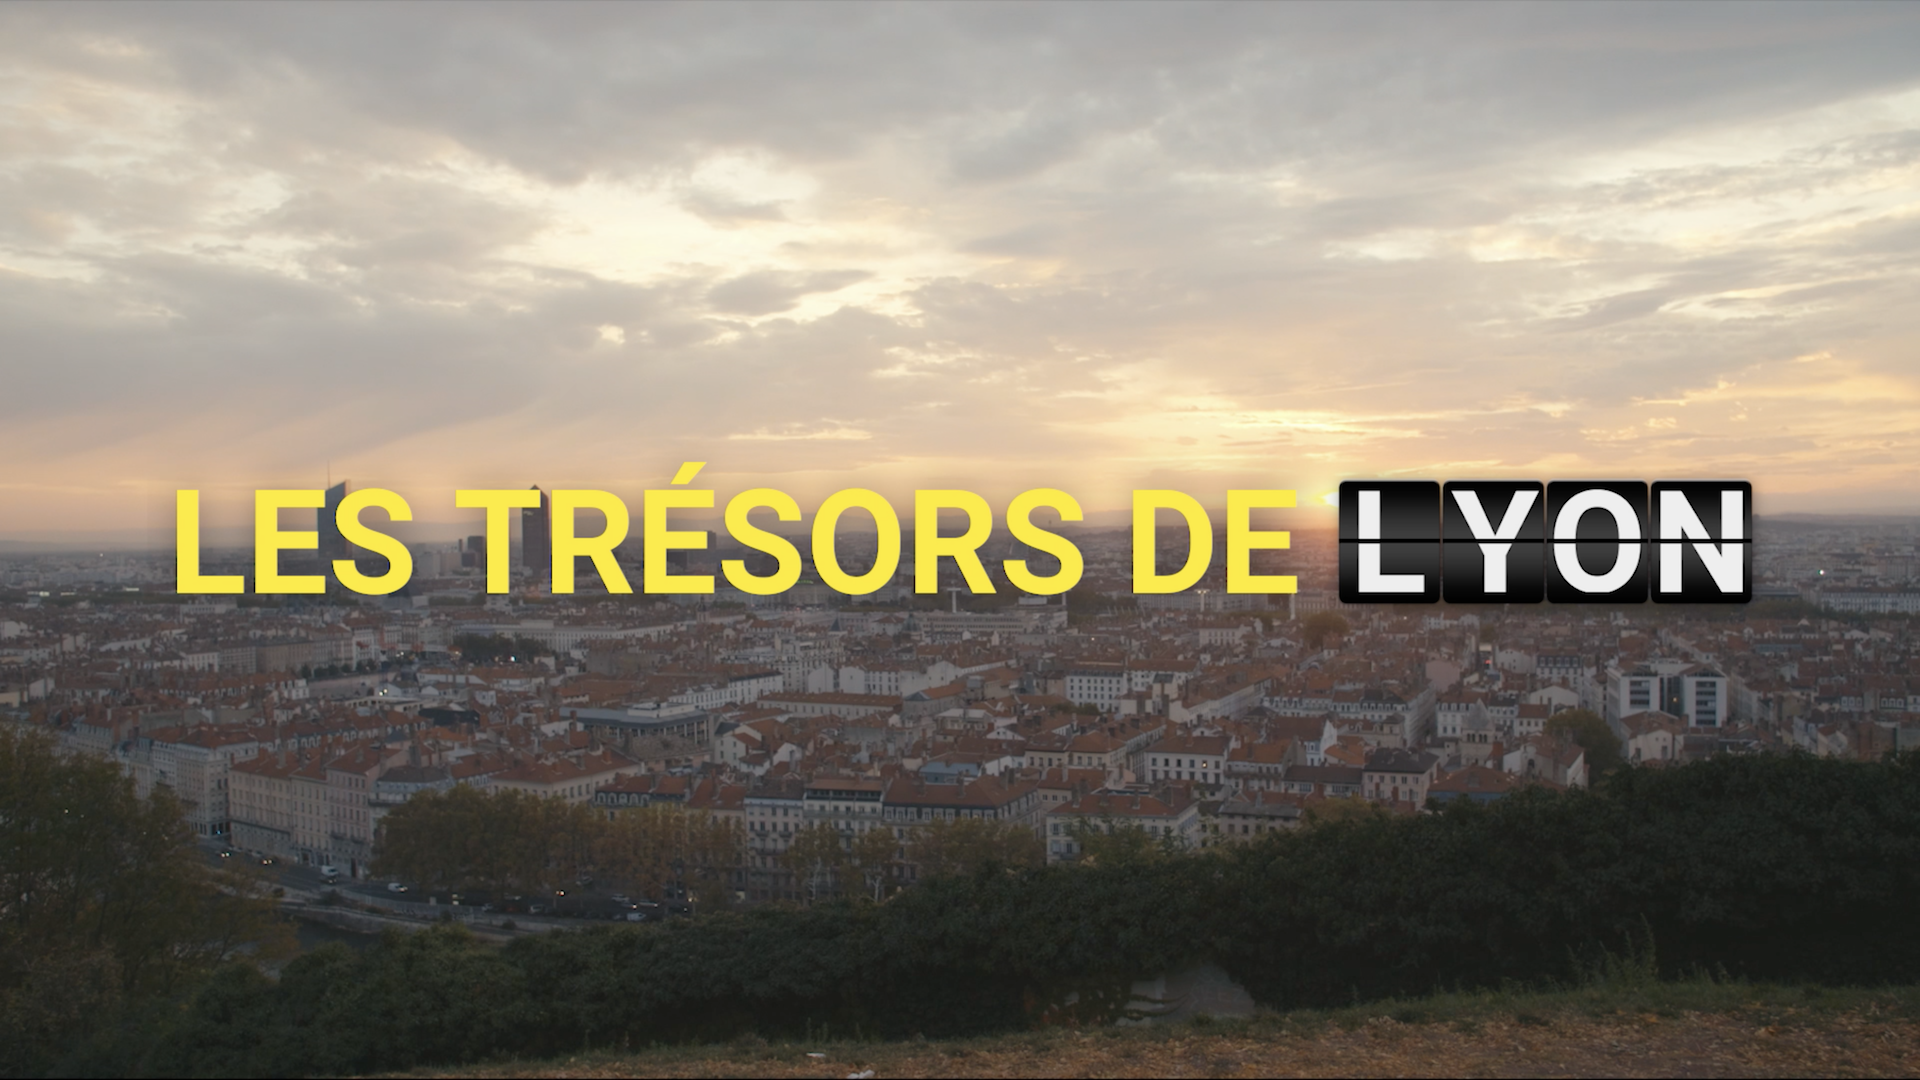 Google - Discovering the treasures of Lyon with Manon Bril